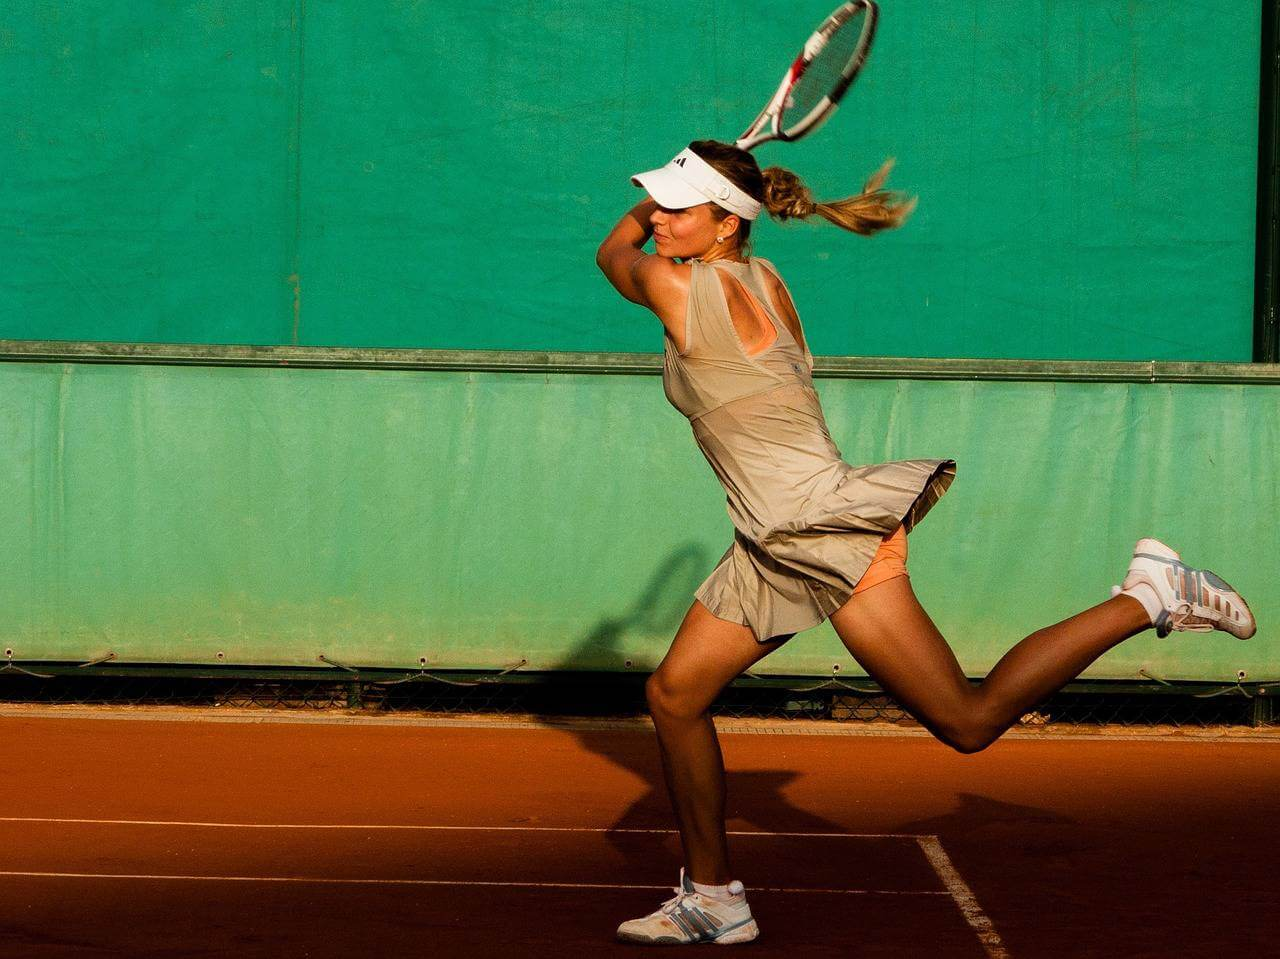 Learn about Tennis Injuries and Treatments